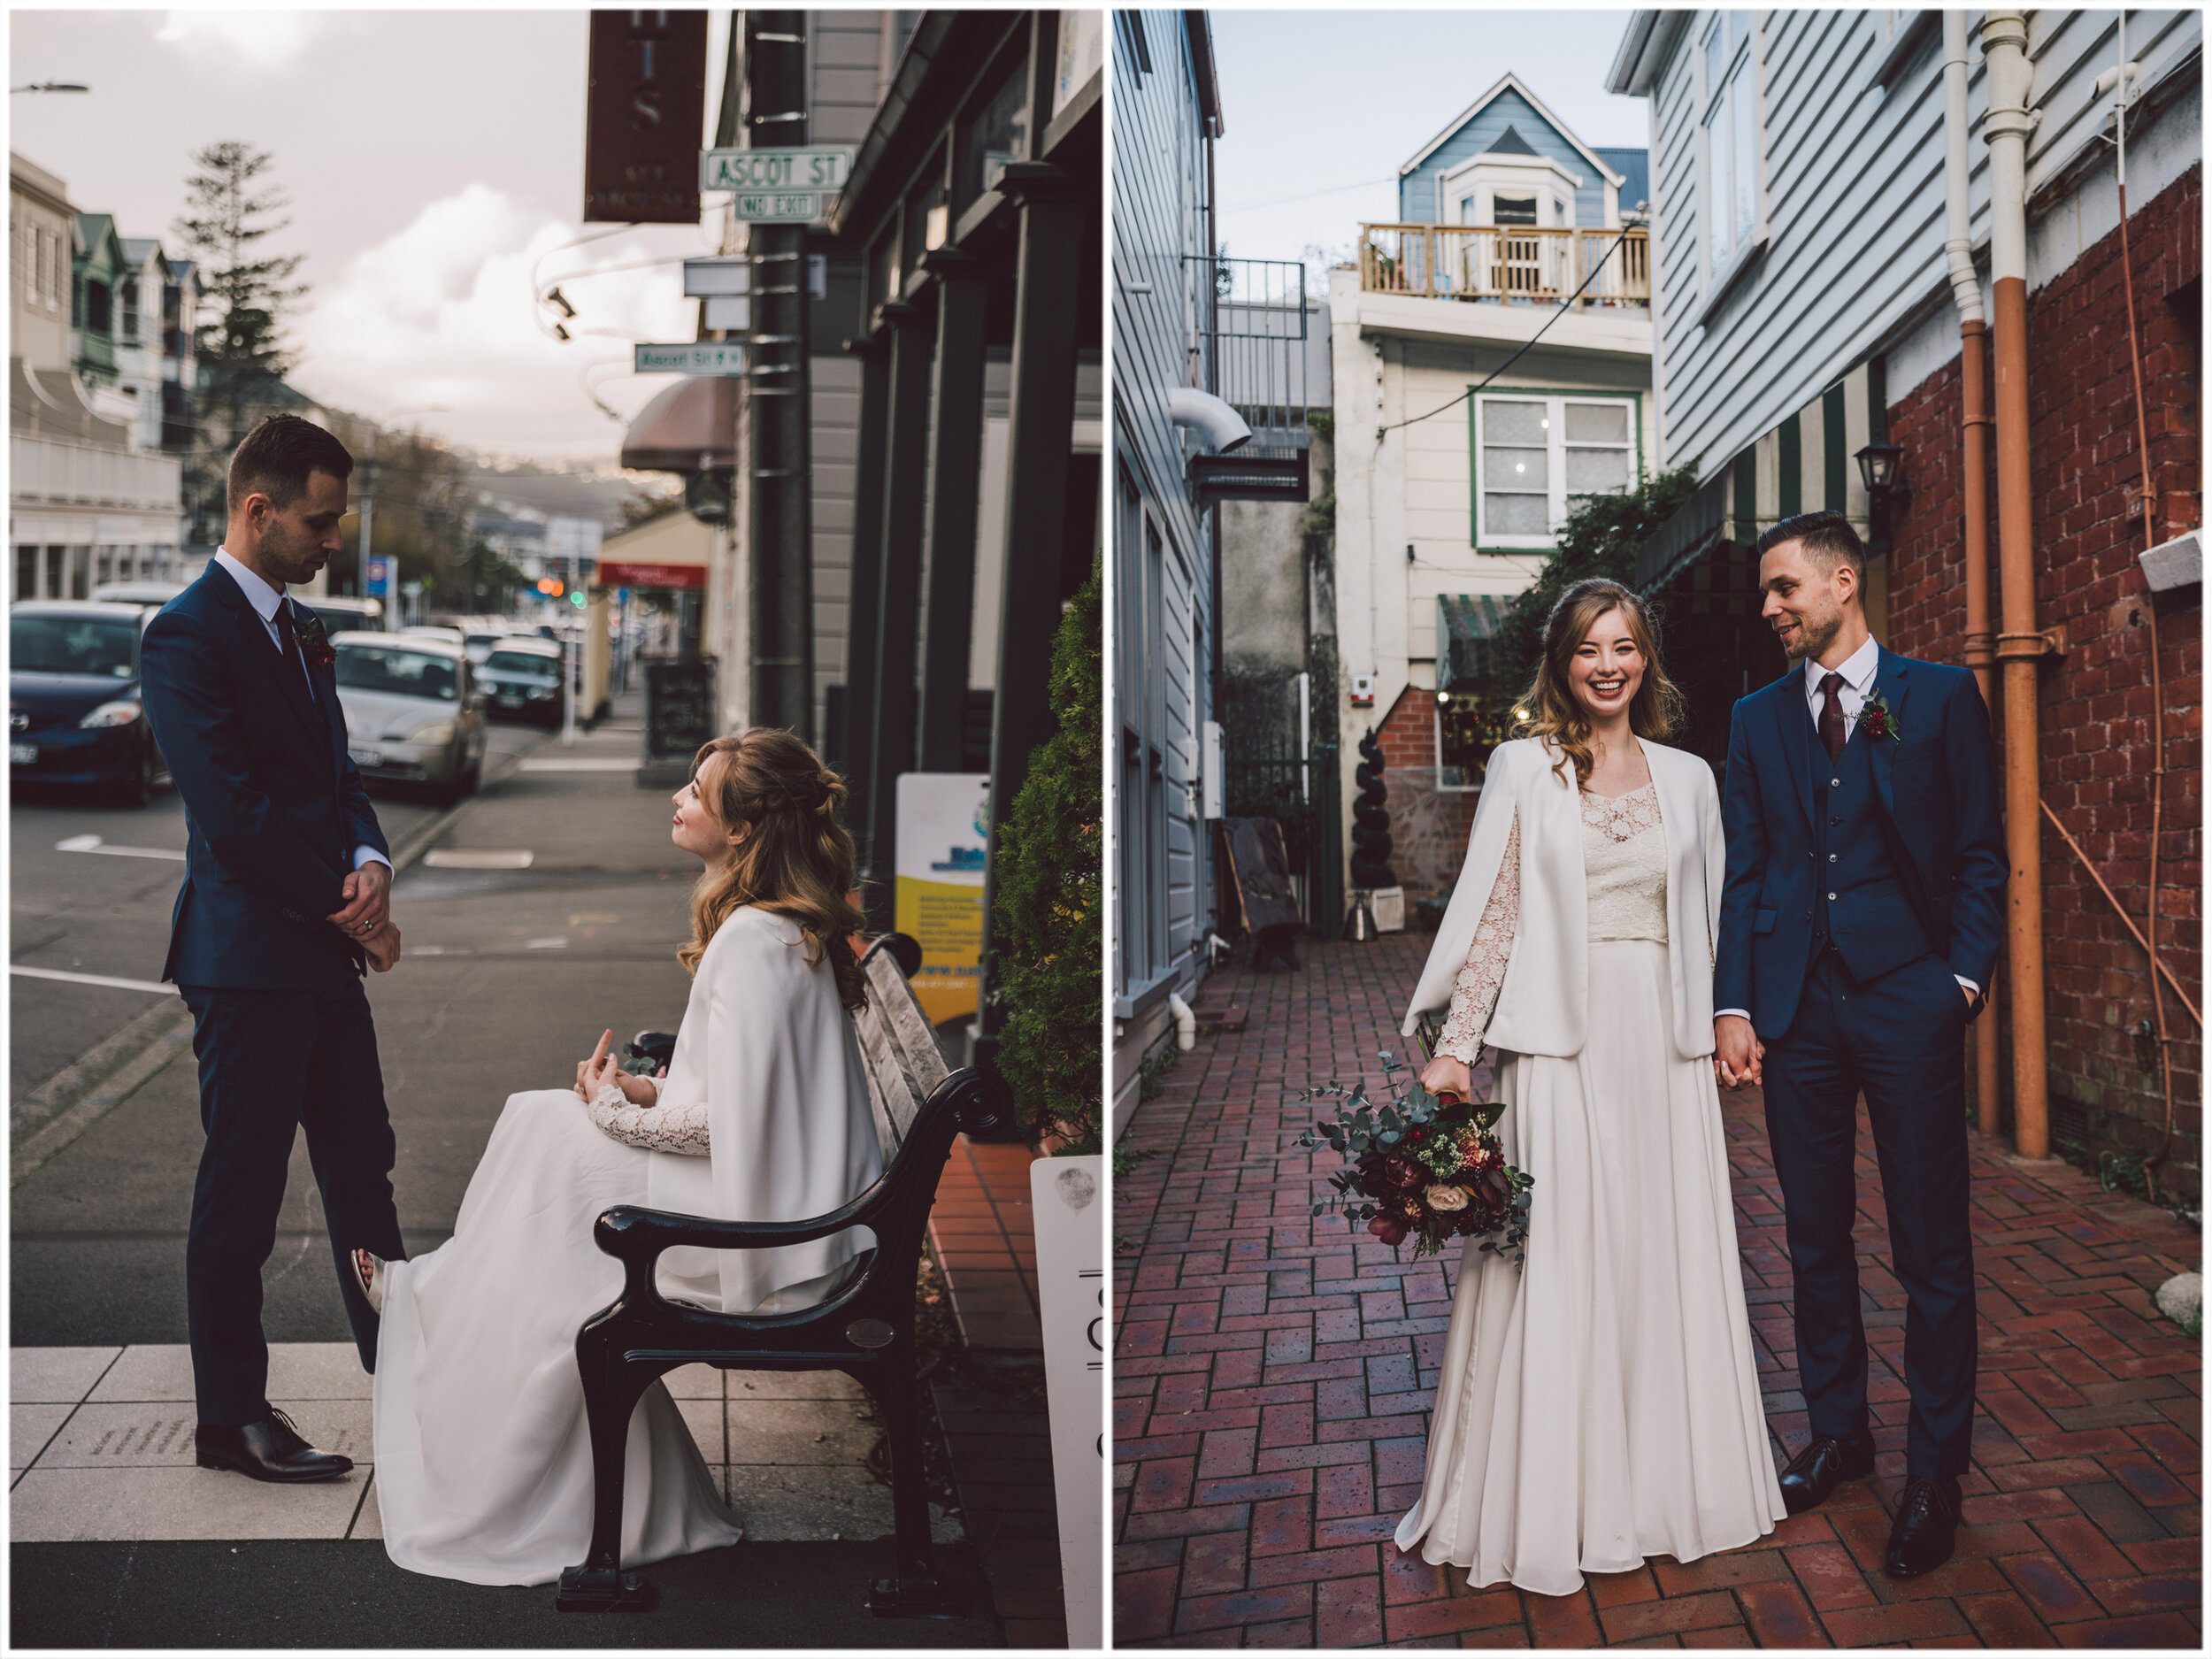 SMP_Wellington_Elopement_Wedding_045.jpg